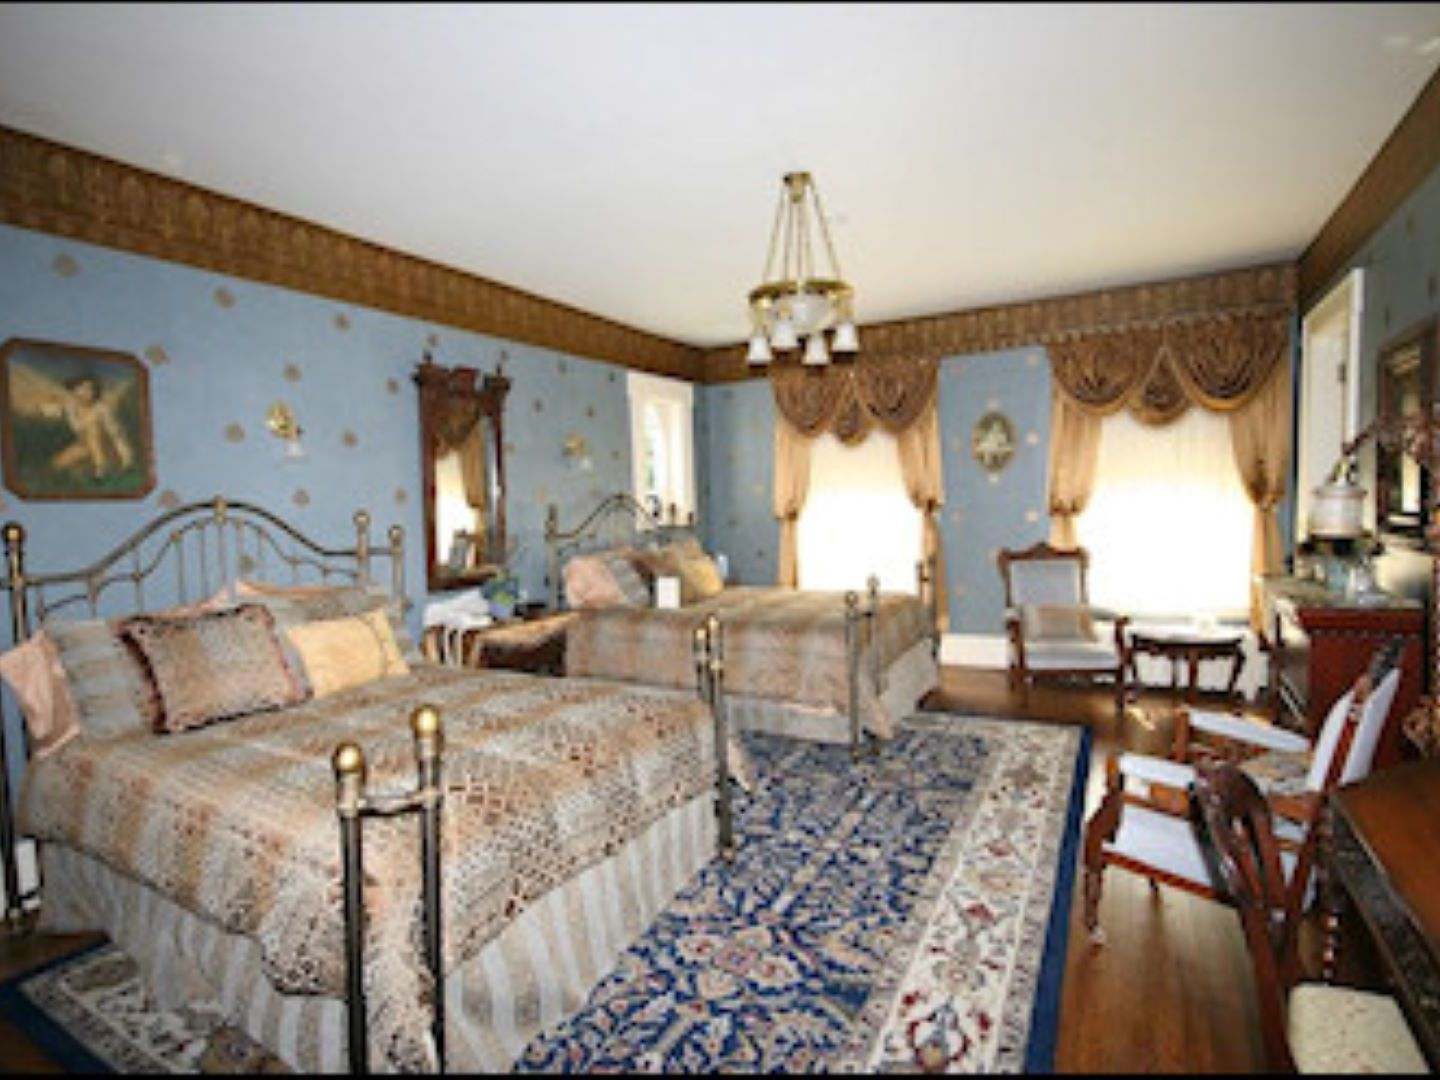 A bedroom with a bed and a chair in a room at Antiquities' Wellington Inn Bed & Breakfast.